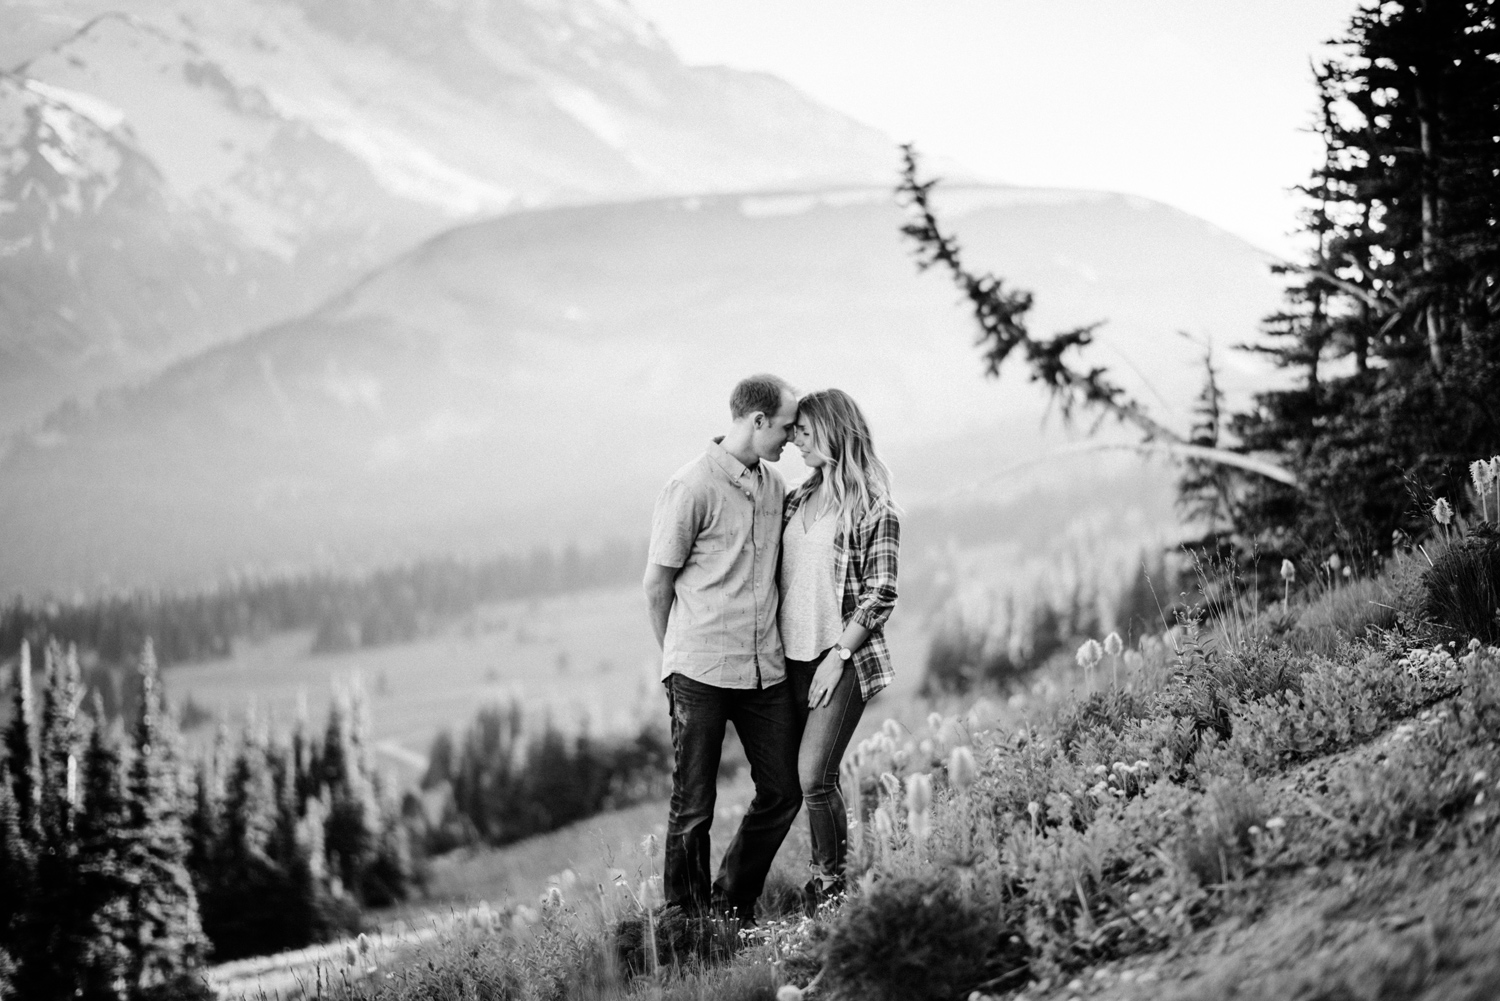 016-mt-rainier-adventure-engagement-session-seattle-film-photographer-ryan-flynn.jpg